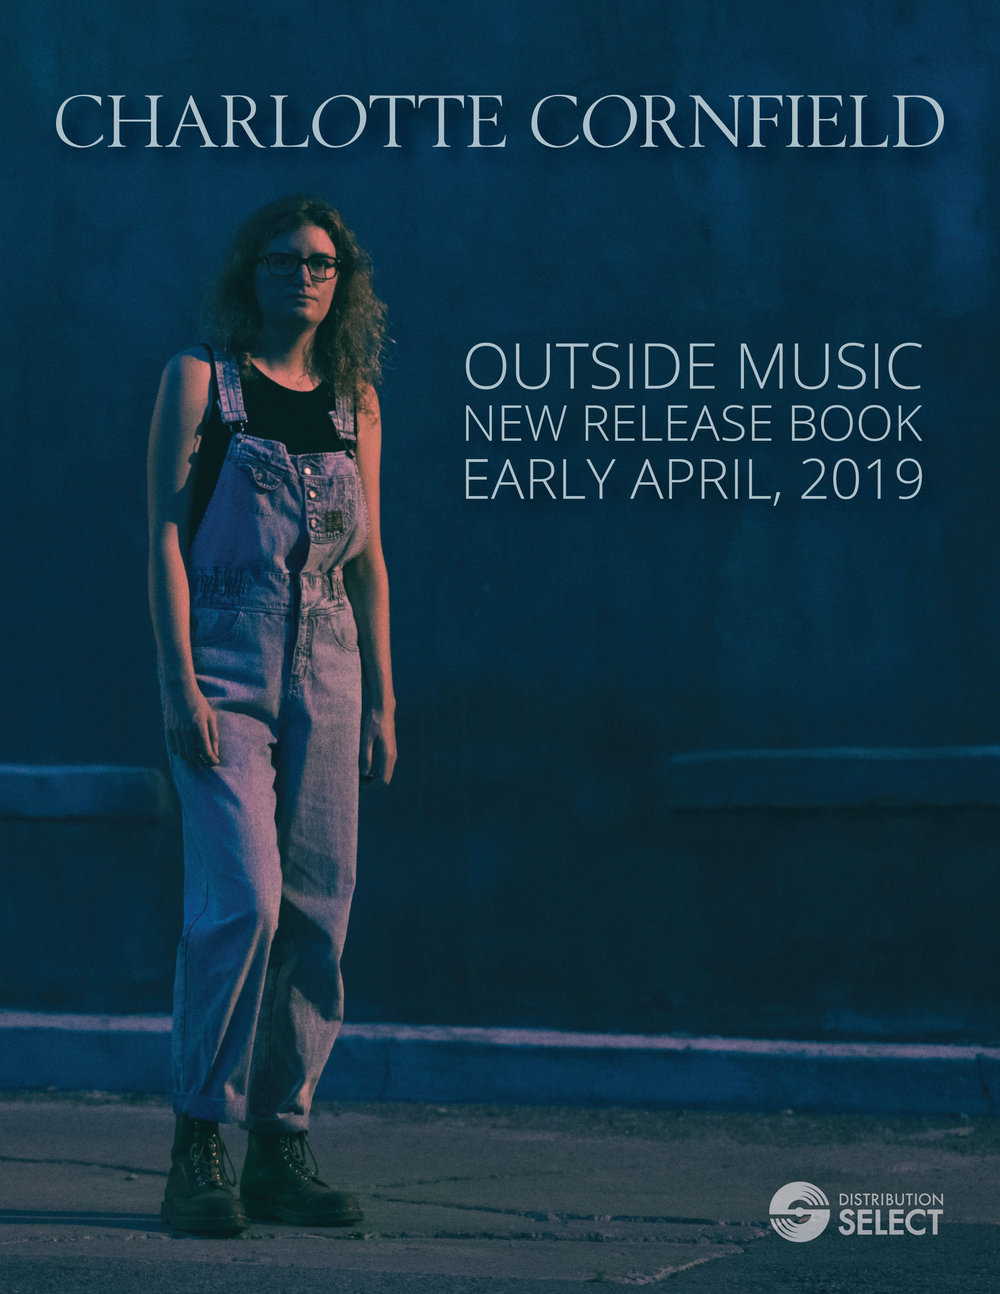 Outside Music New Release Book: Early April, 2019 - To view online, click the book icon.To save the book to your computer, right click save as…EARLY APRIL, 2019 ORDER FORM